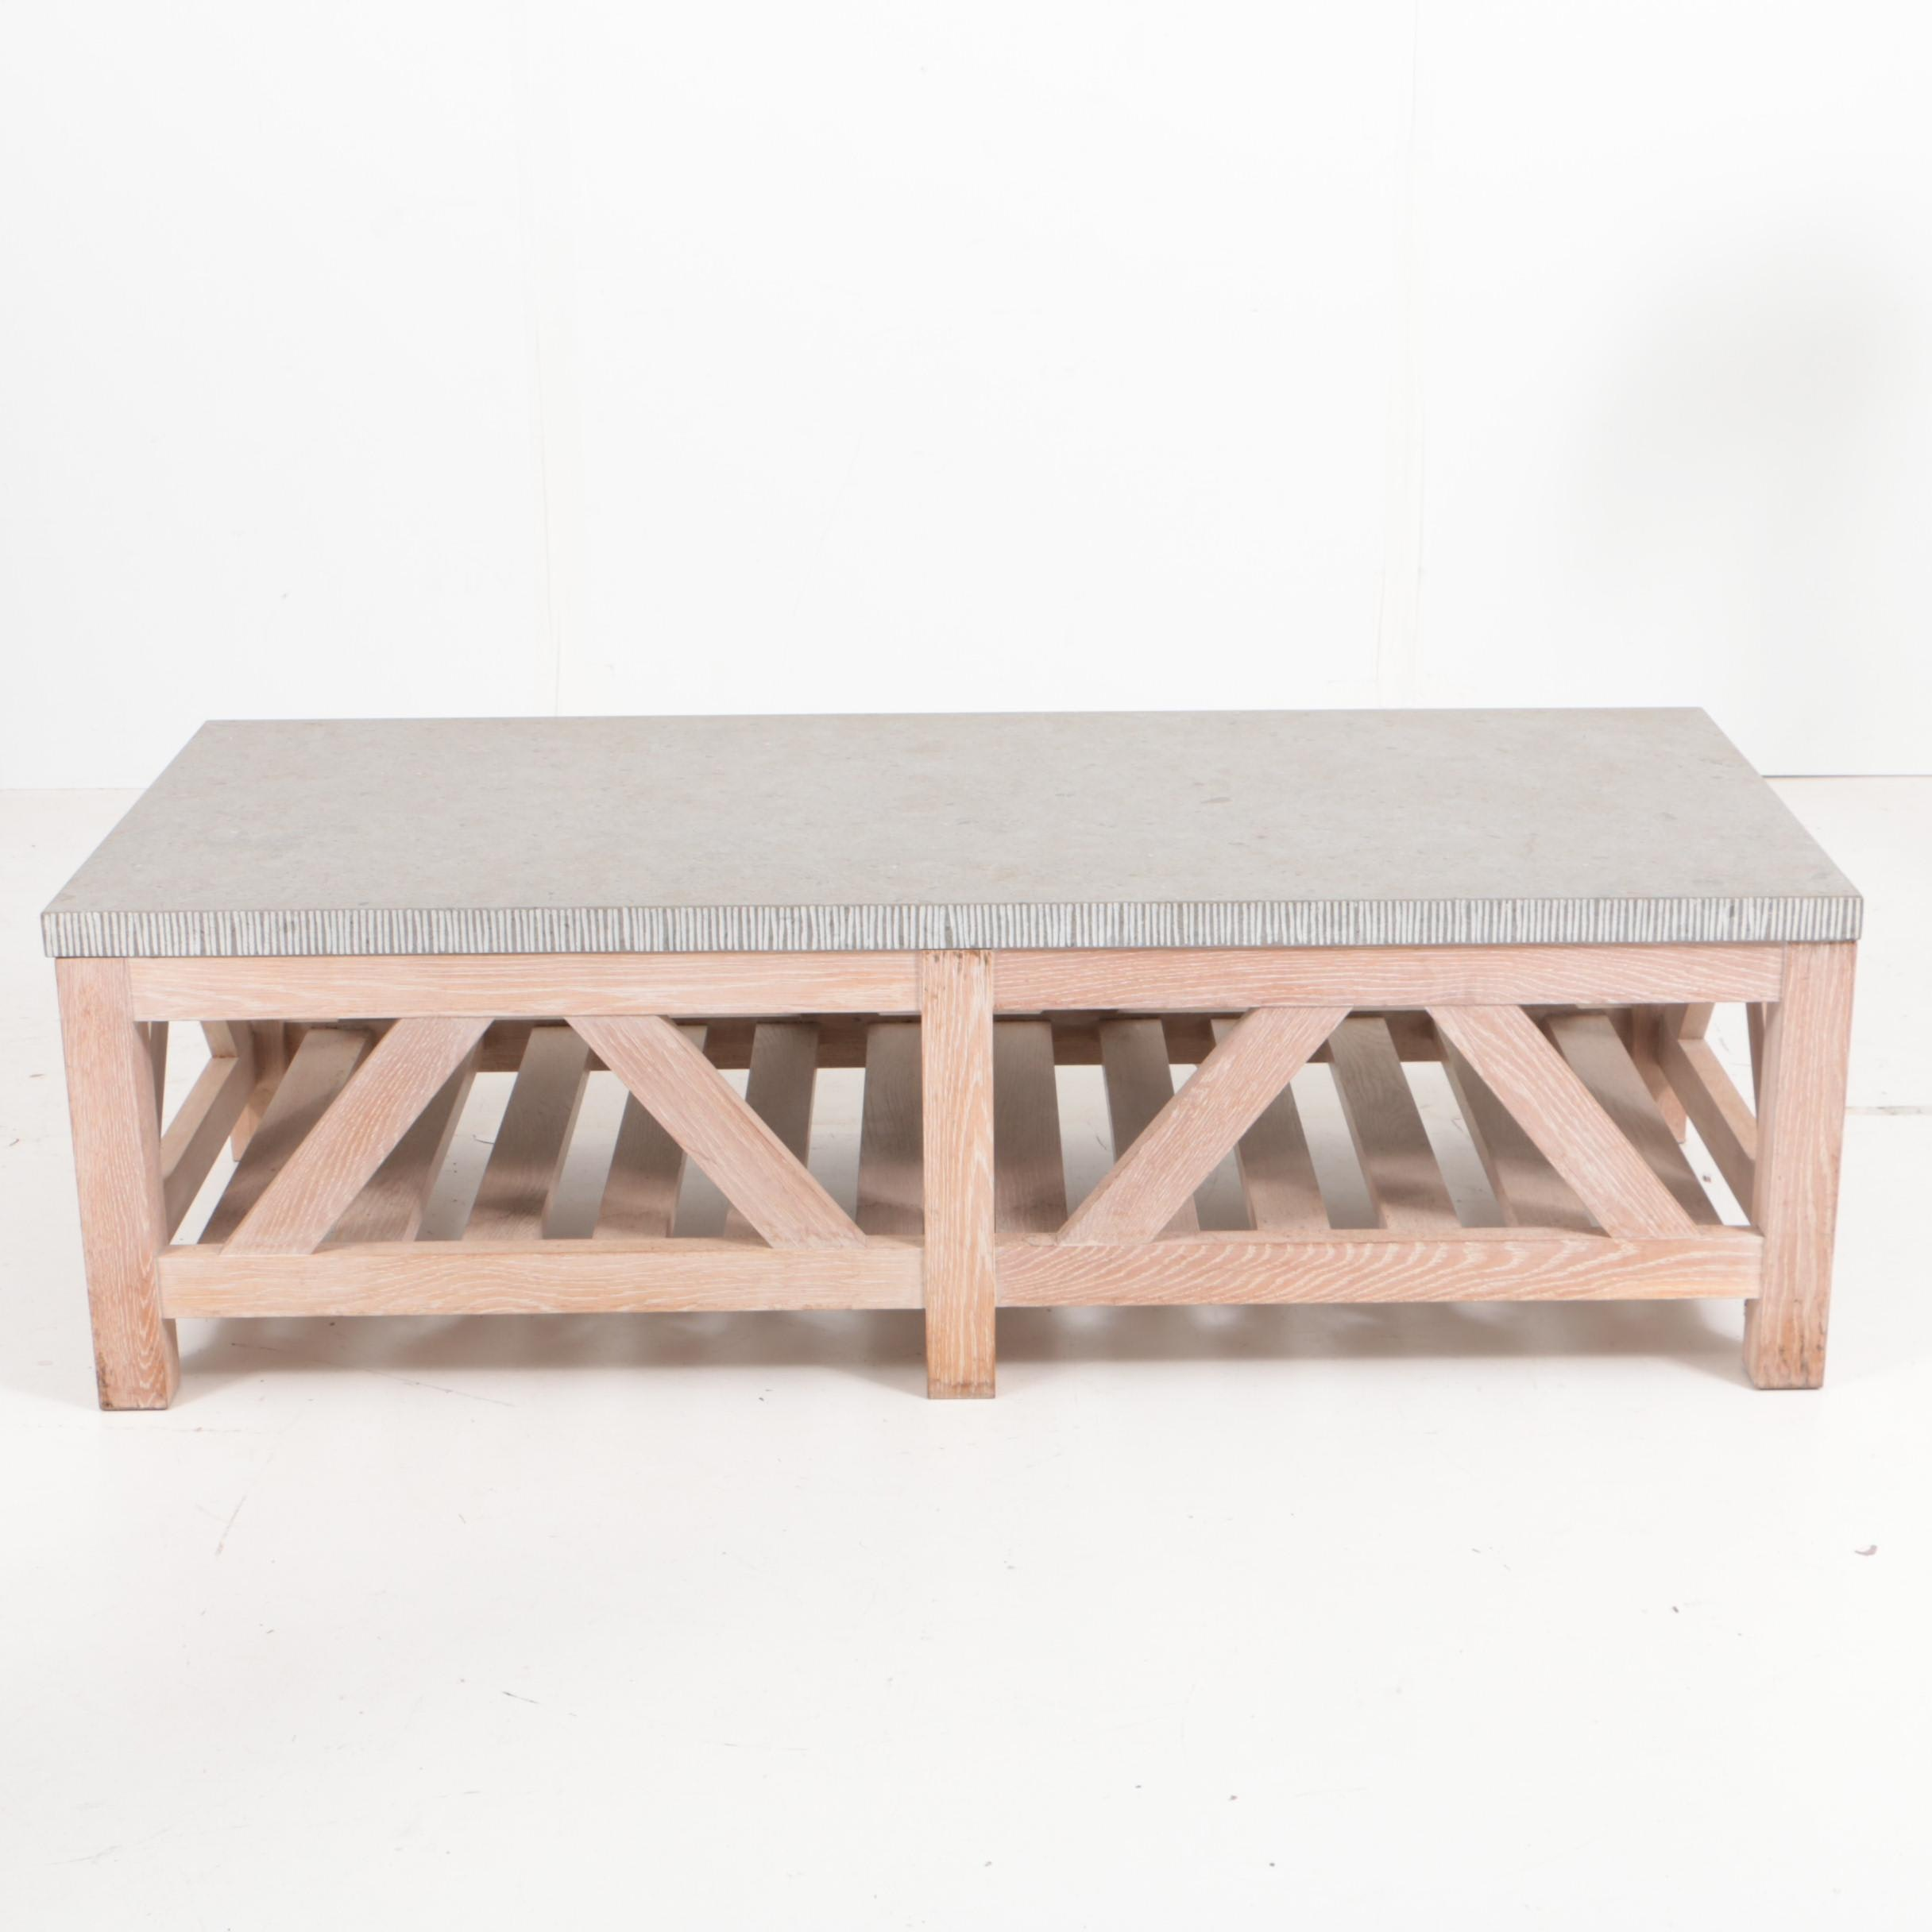 Contemporary Trestle Base Coffee Table with Stone Top